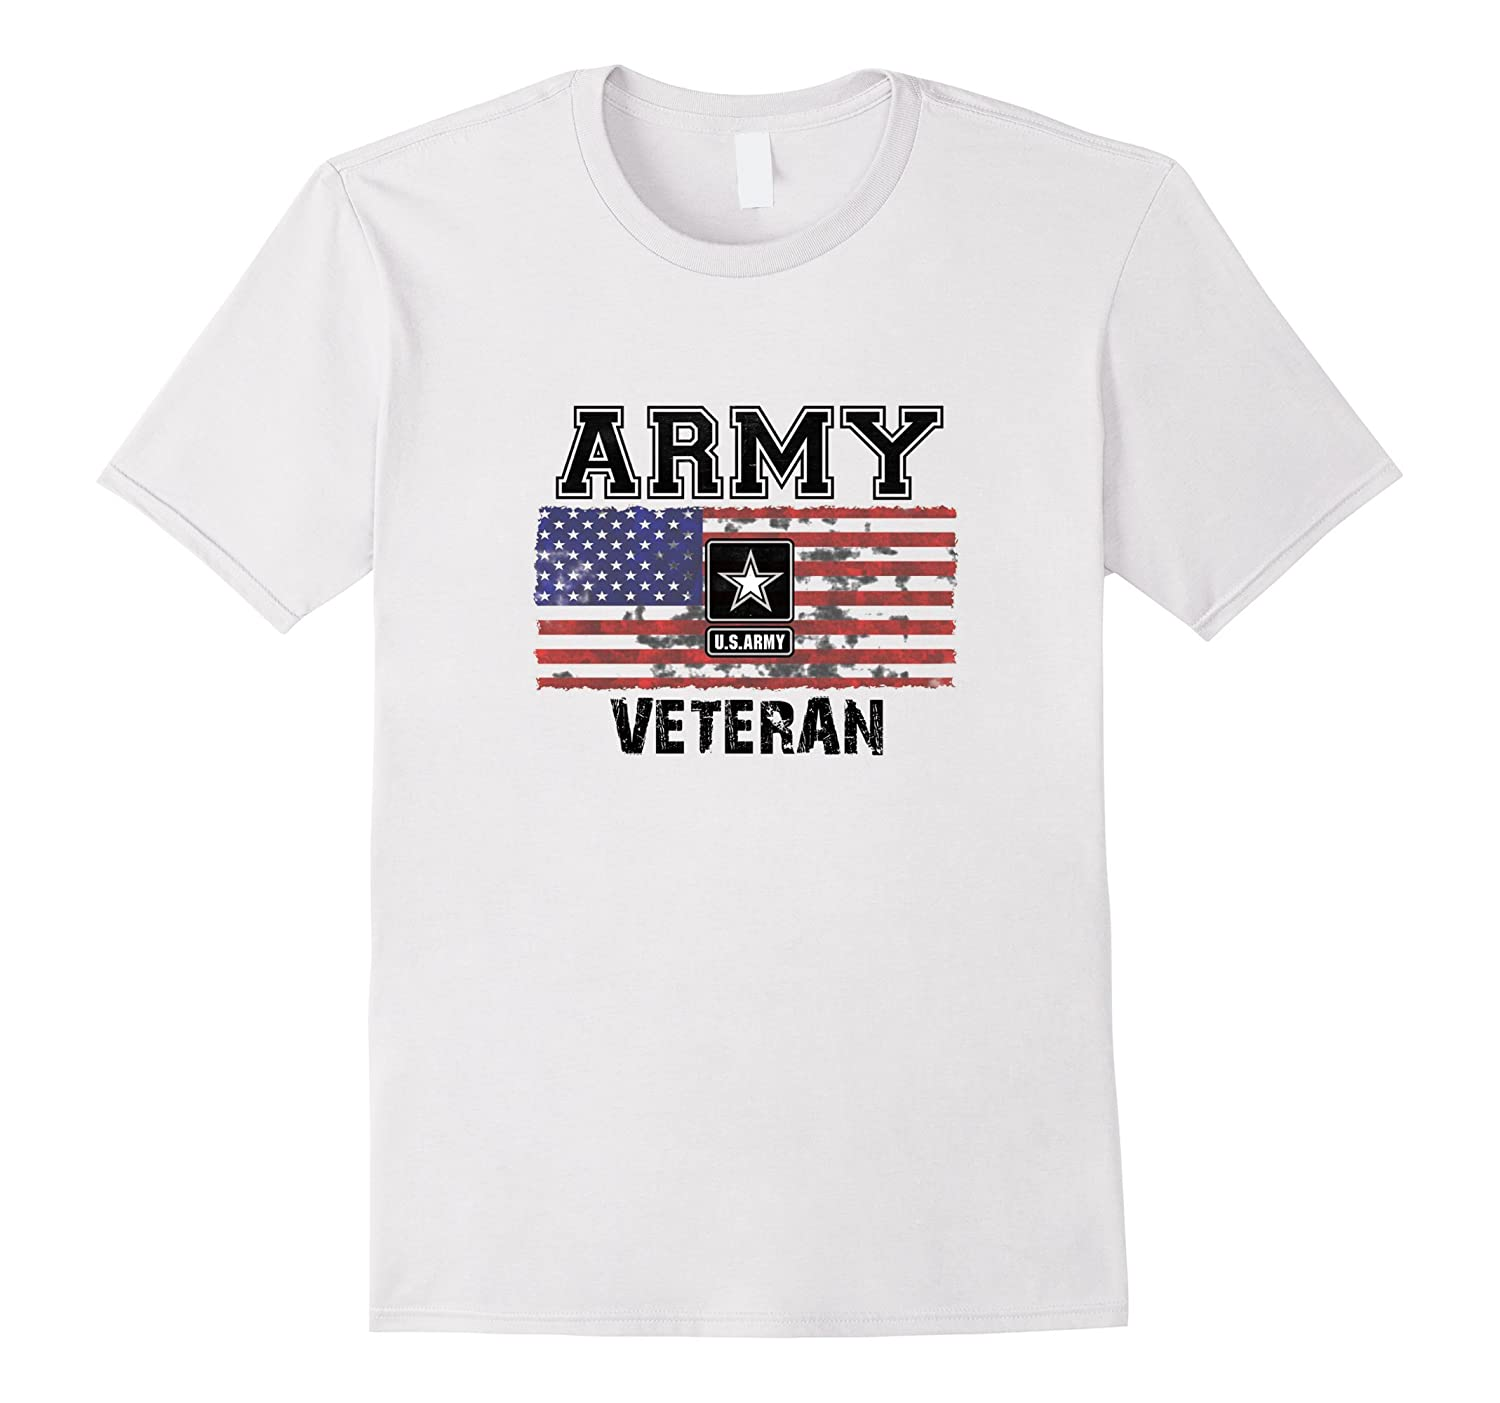 Veteran shirts us army veteran t shirt with us flag goatstee for Veteran t shirts patriotic t shirts